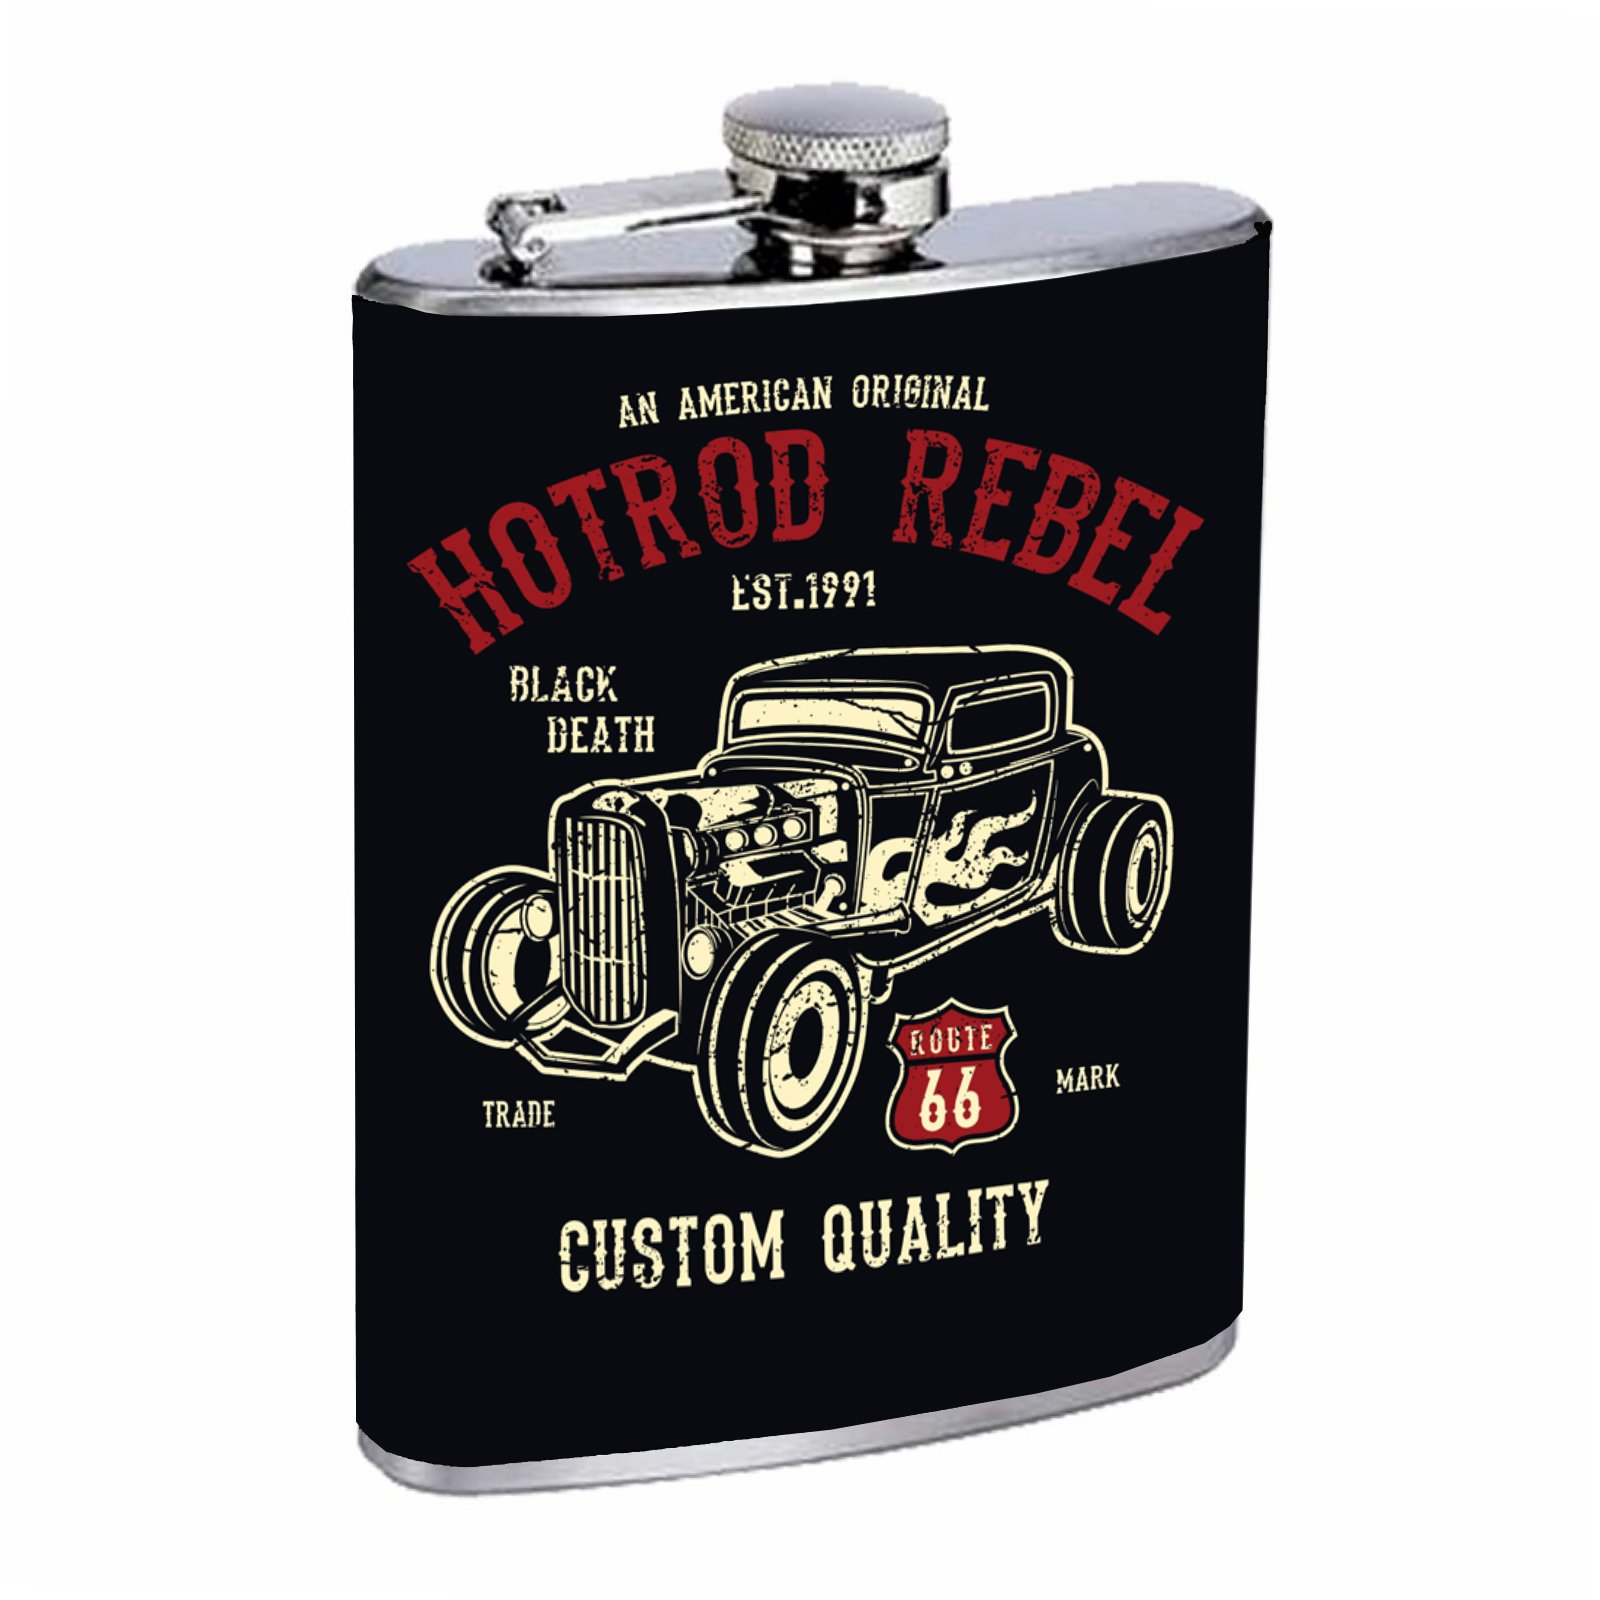 Lyfe Style Stainless Steel Flask 8oz with Beautiful T-shirt Design Hot Rod Rebel